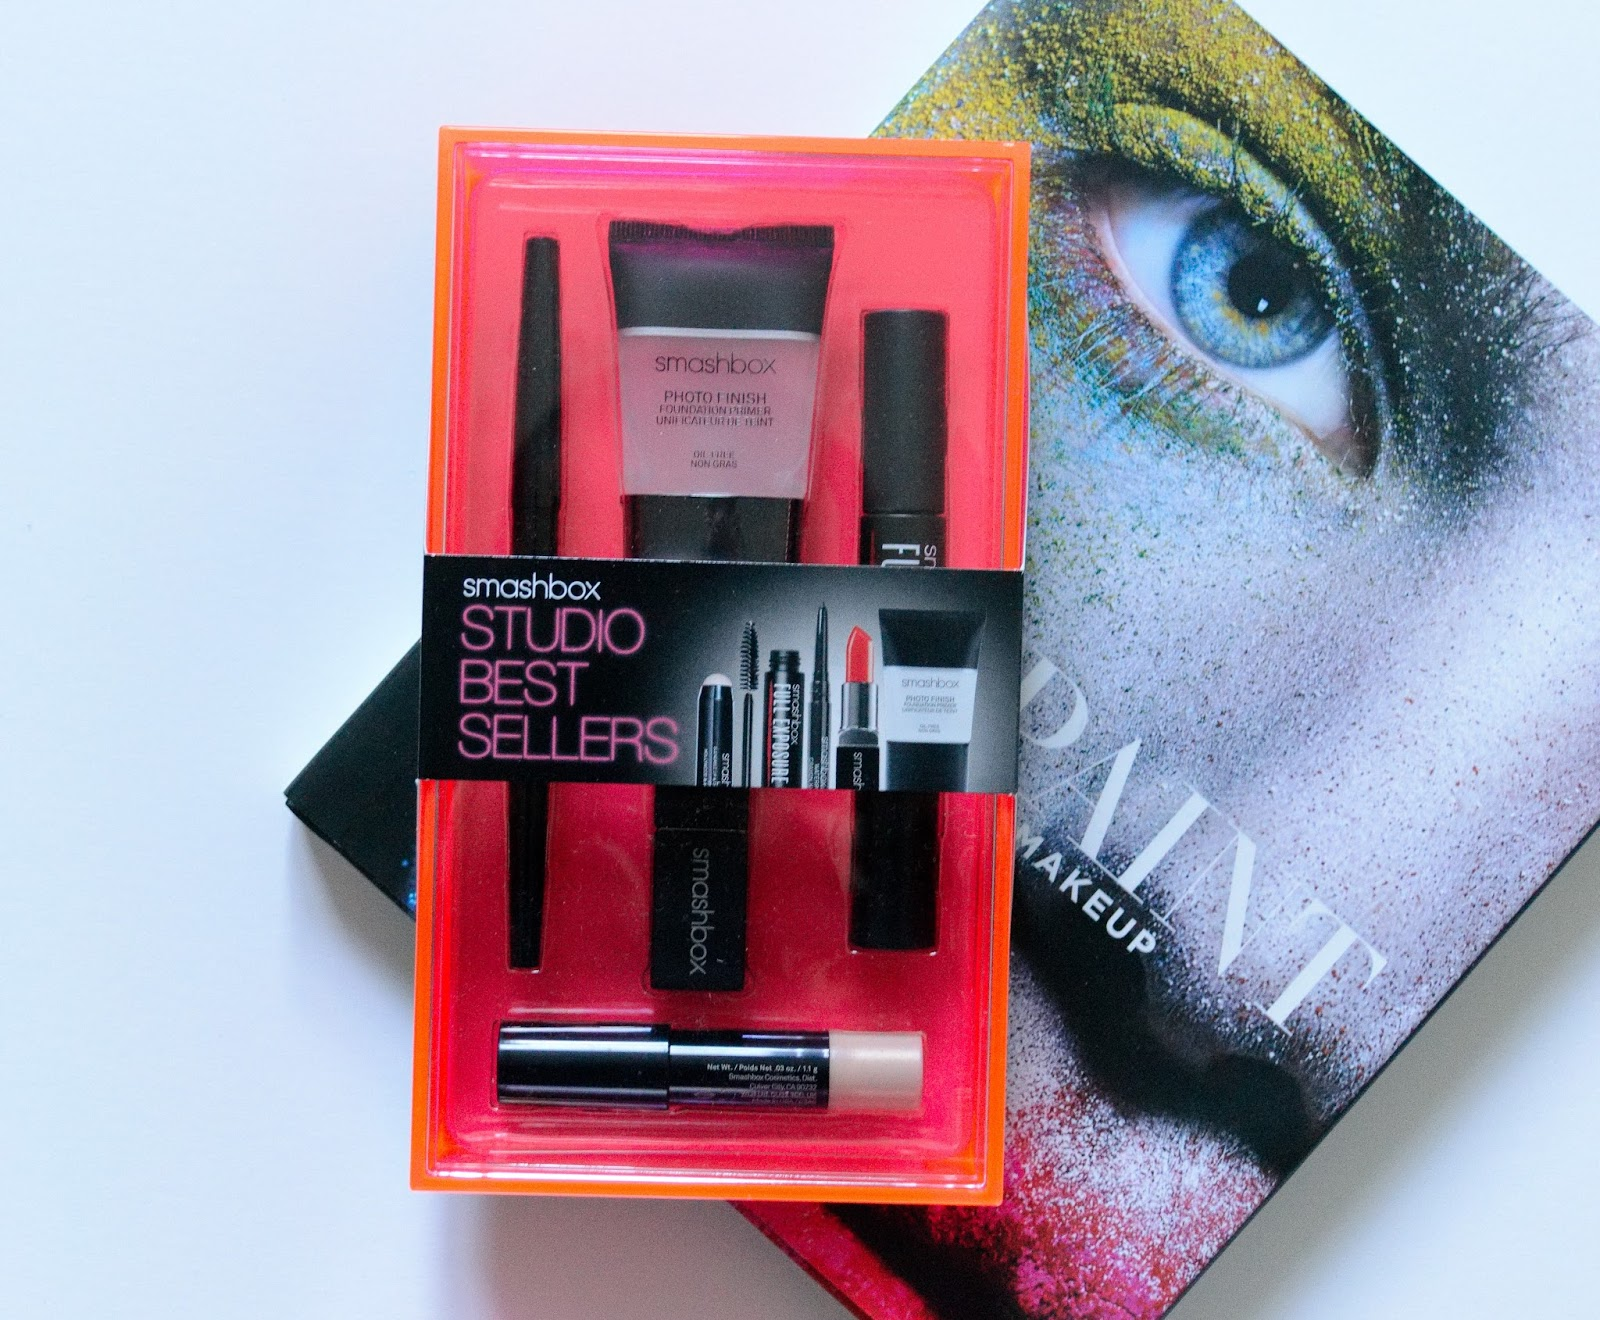 Smashbox Light It Up Studio Best Sellers Review - Aspiring Londoner